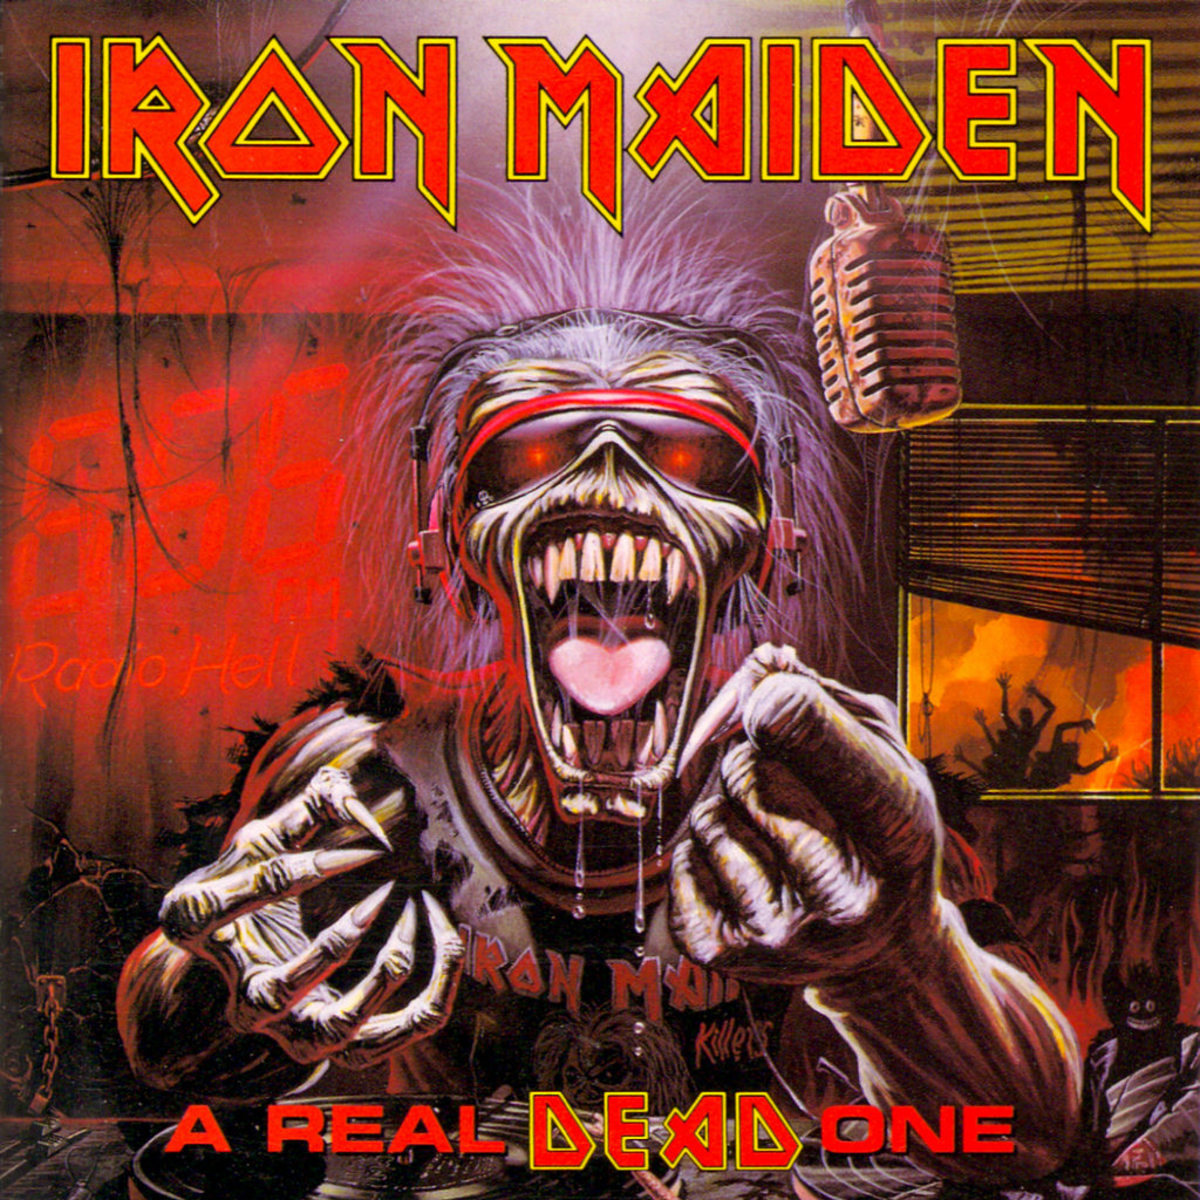 "Iron Maiden ""A Real Dead One"" EMI United Kingdom 0777 7 89248 1-4  12"" Vinyl Record  (1993) Album Cover Art by Derek Riggs"